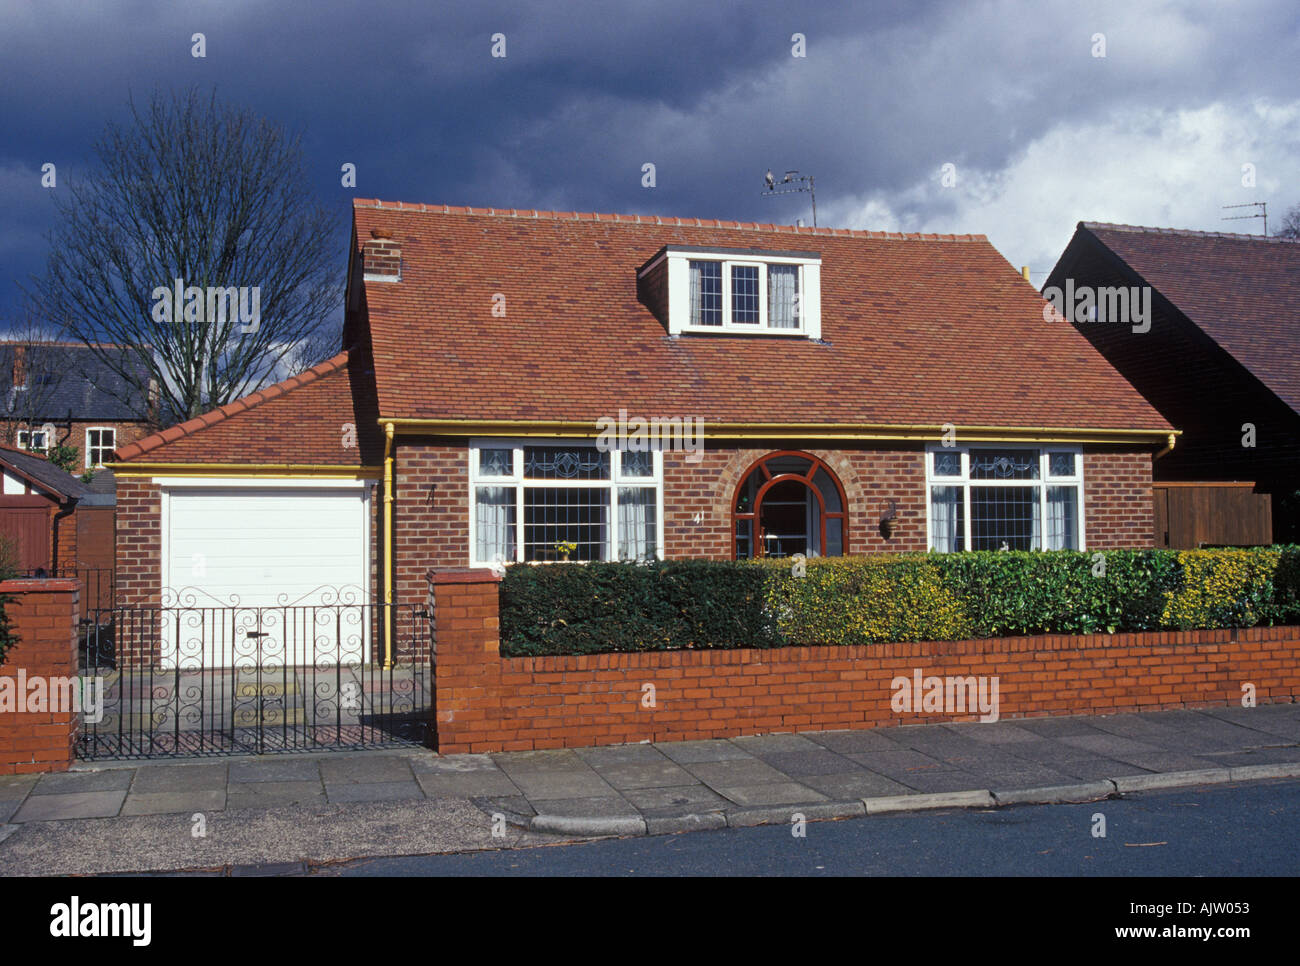 Heaton moor stockport cheshire bungalow with garage for Bungalow garage